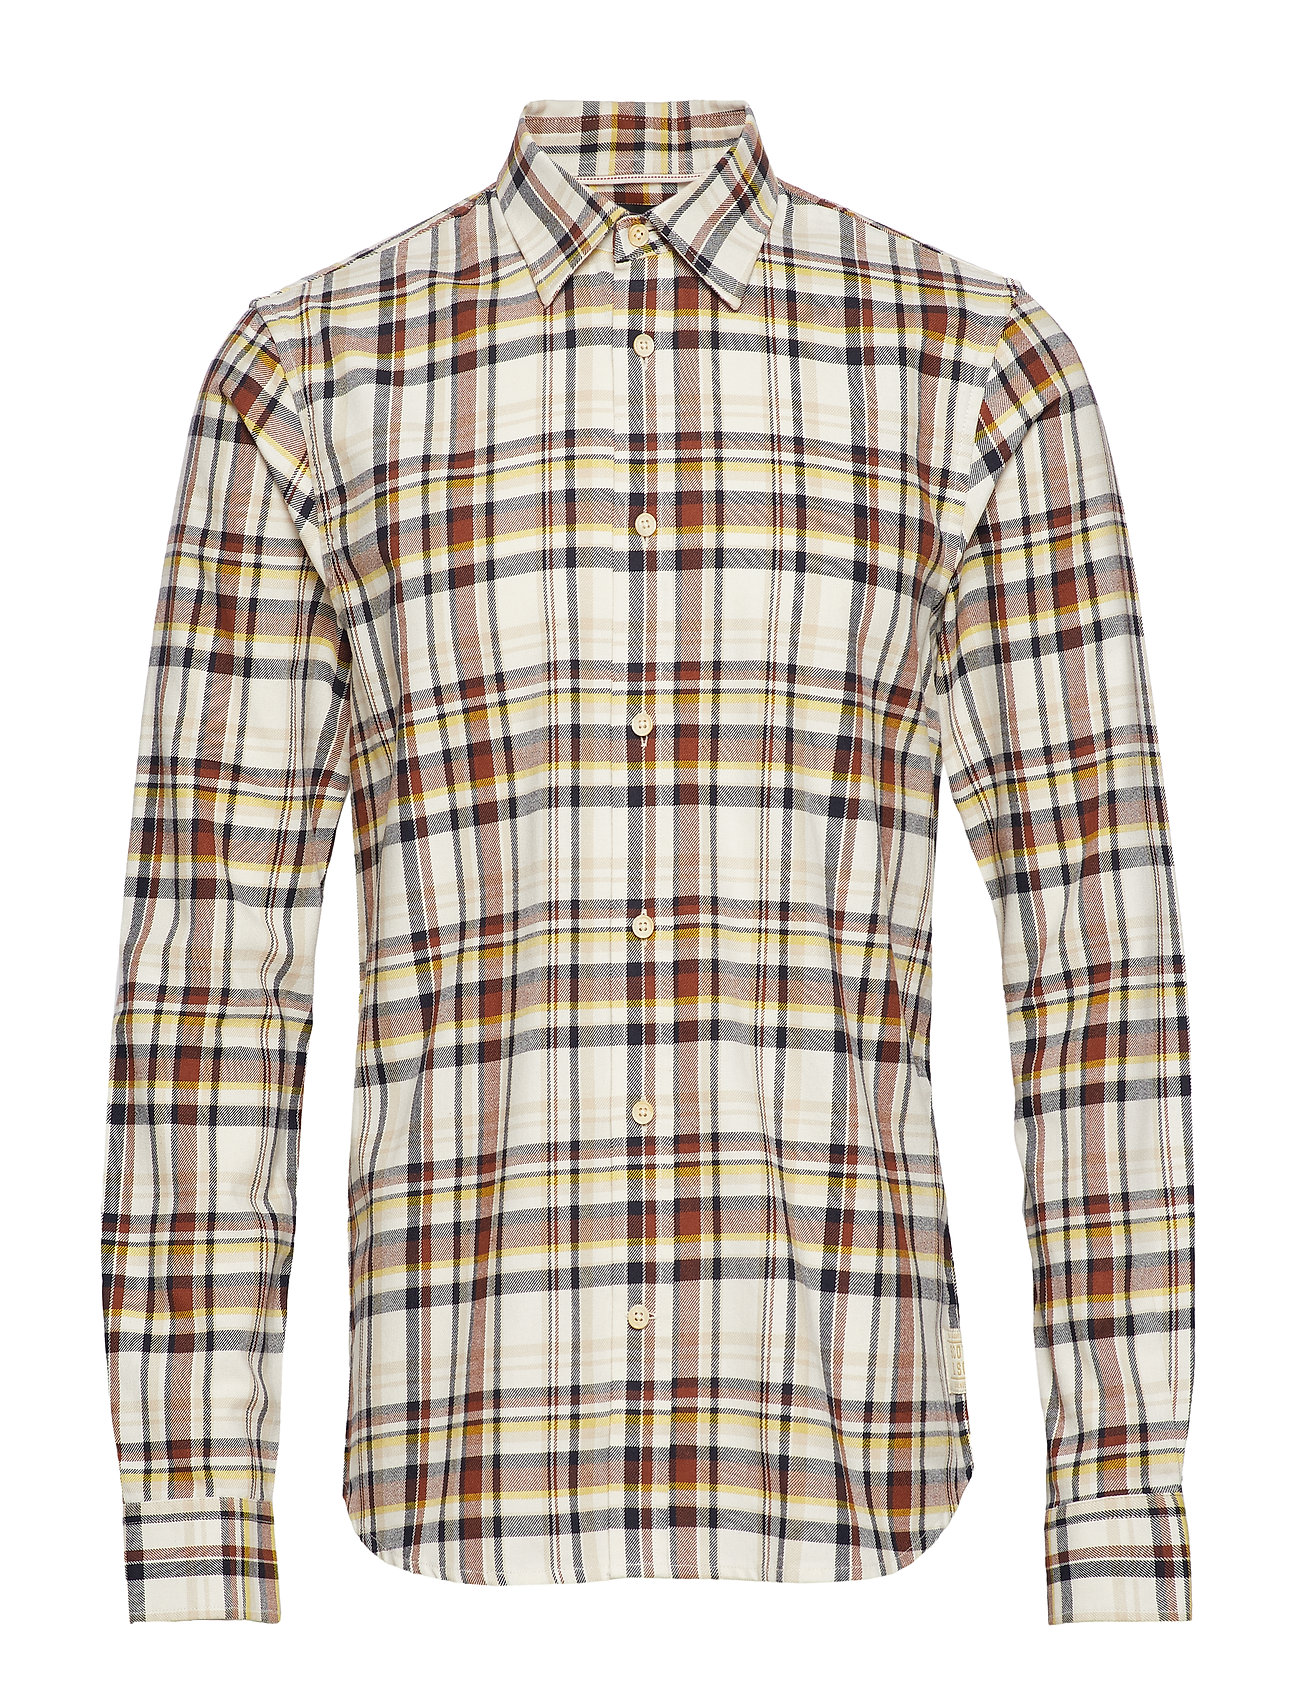 Scotch & Soda REGULAR FIT- Long sleeve shirt in worker styling - COMBO A